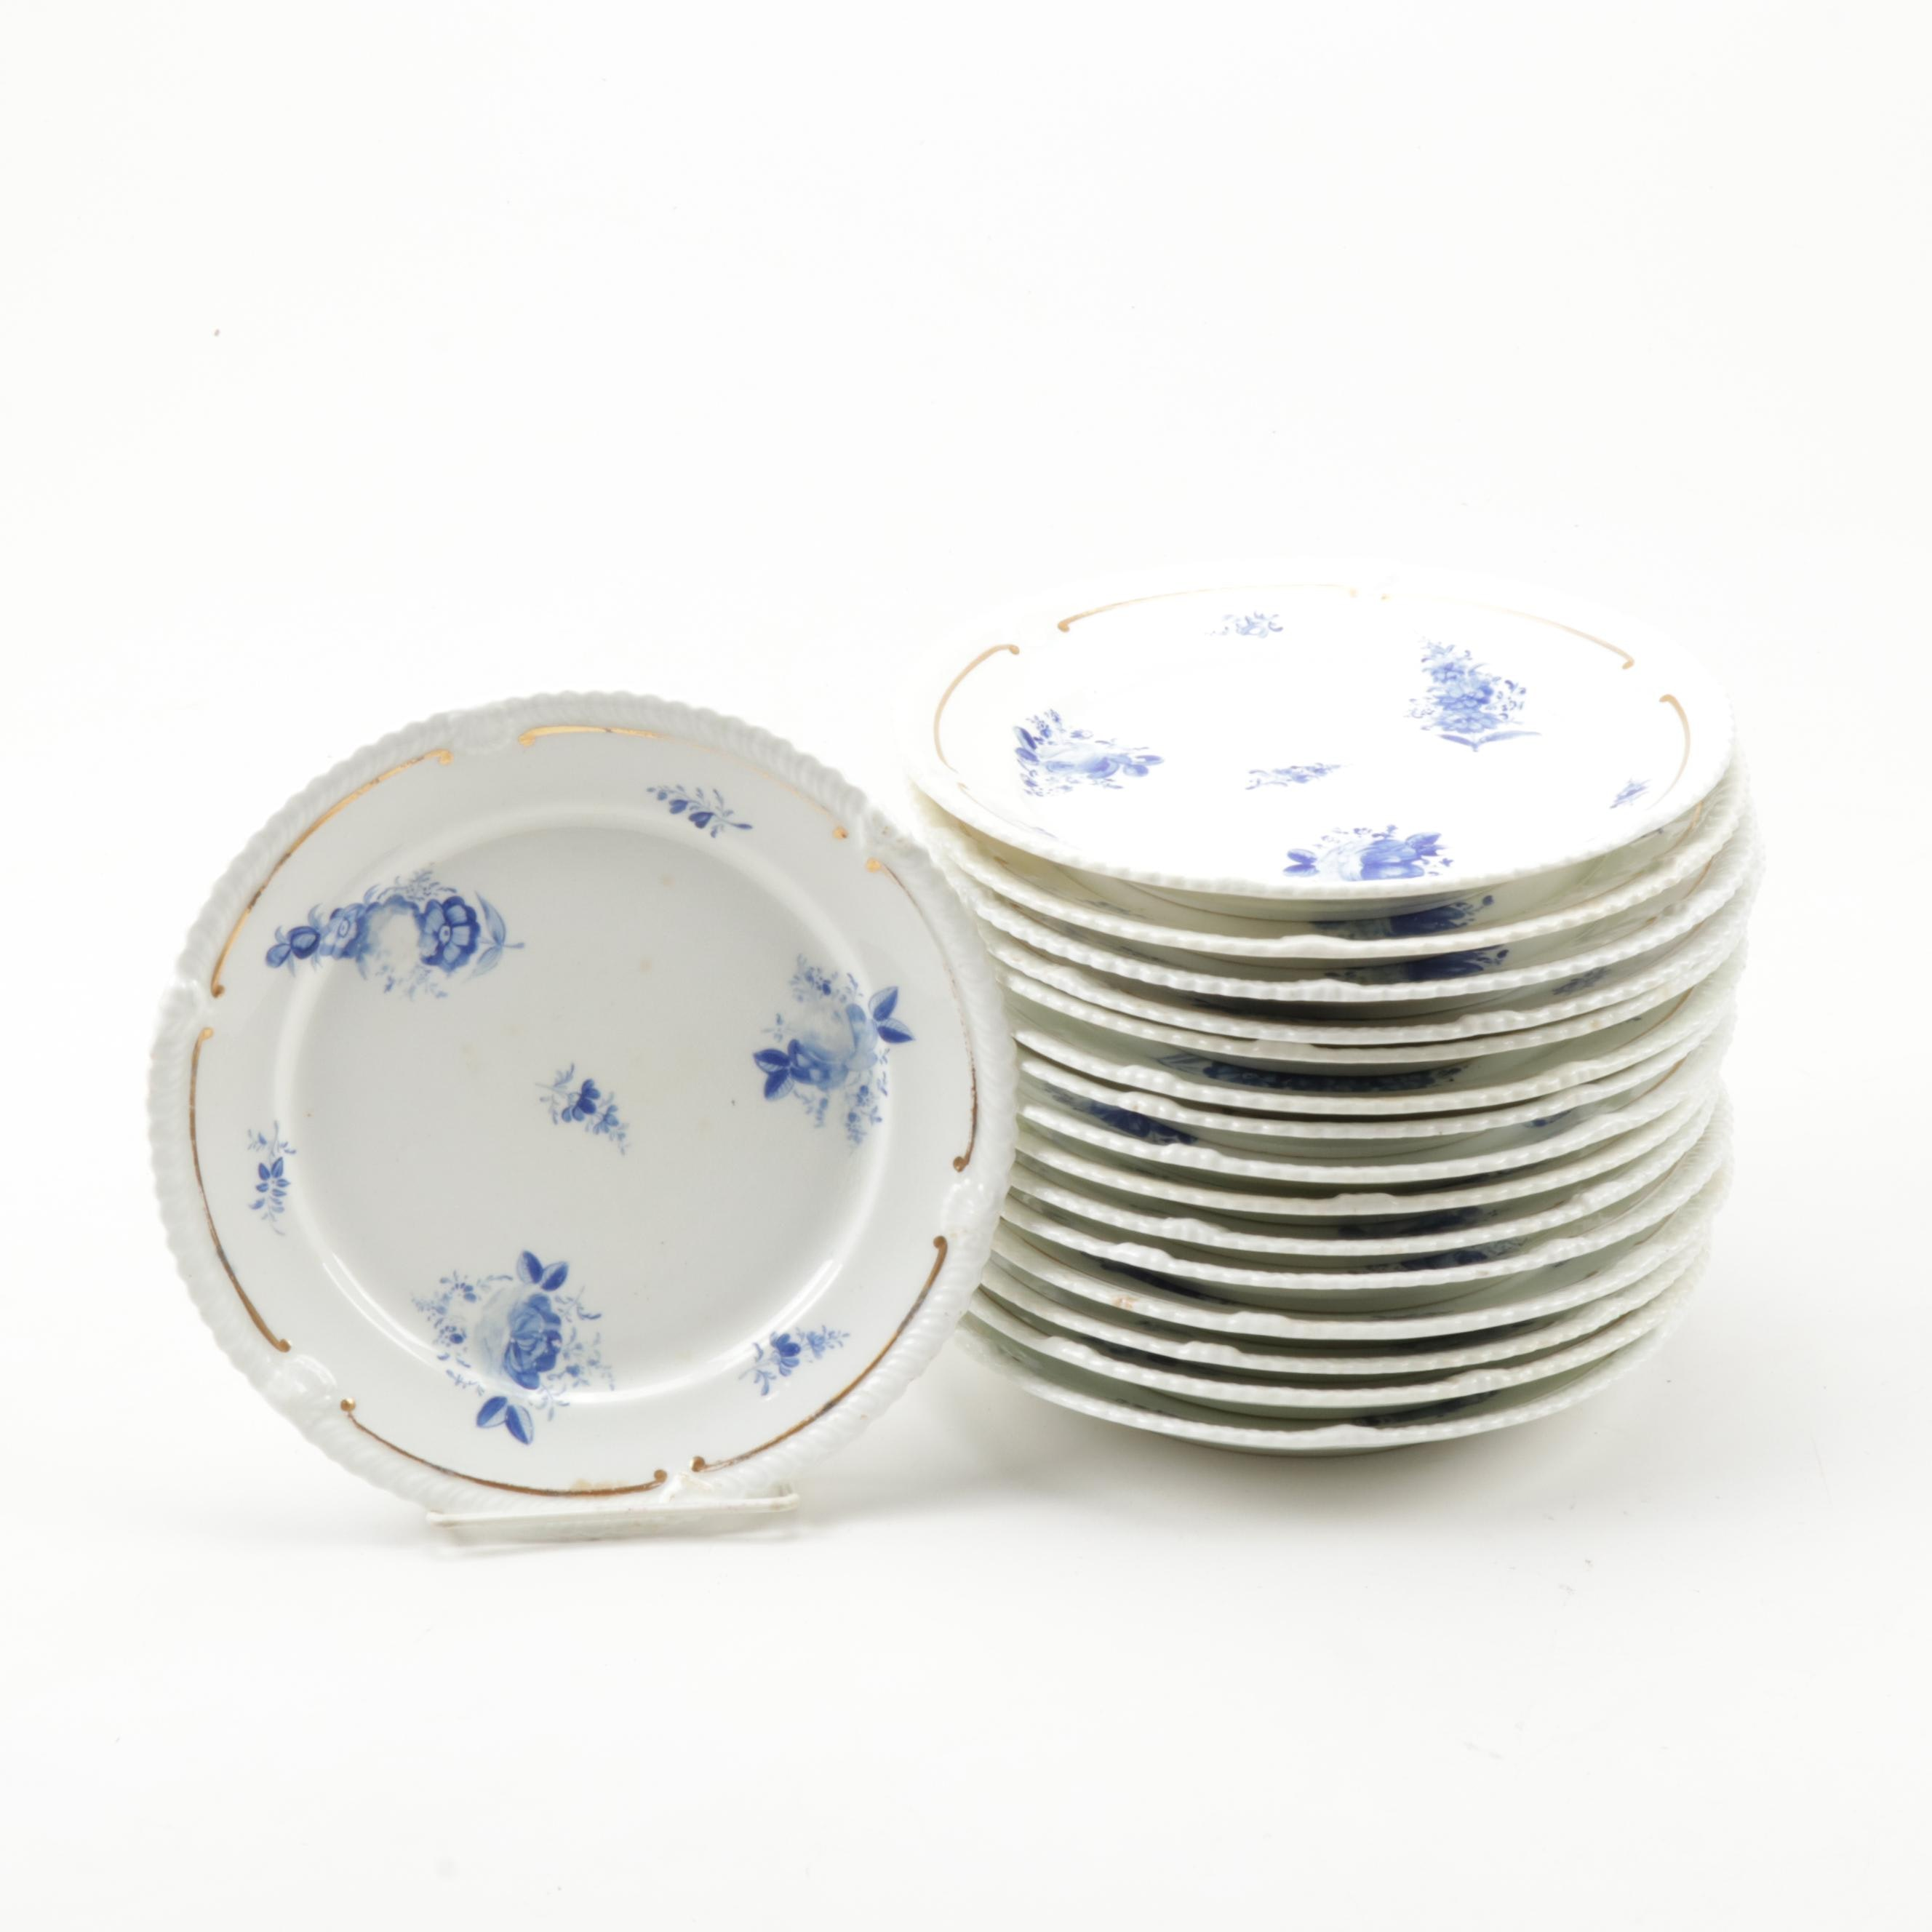 Hand-Painted Porcelain Plates, 19th Century